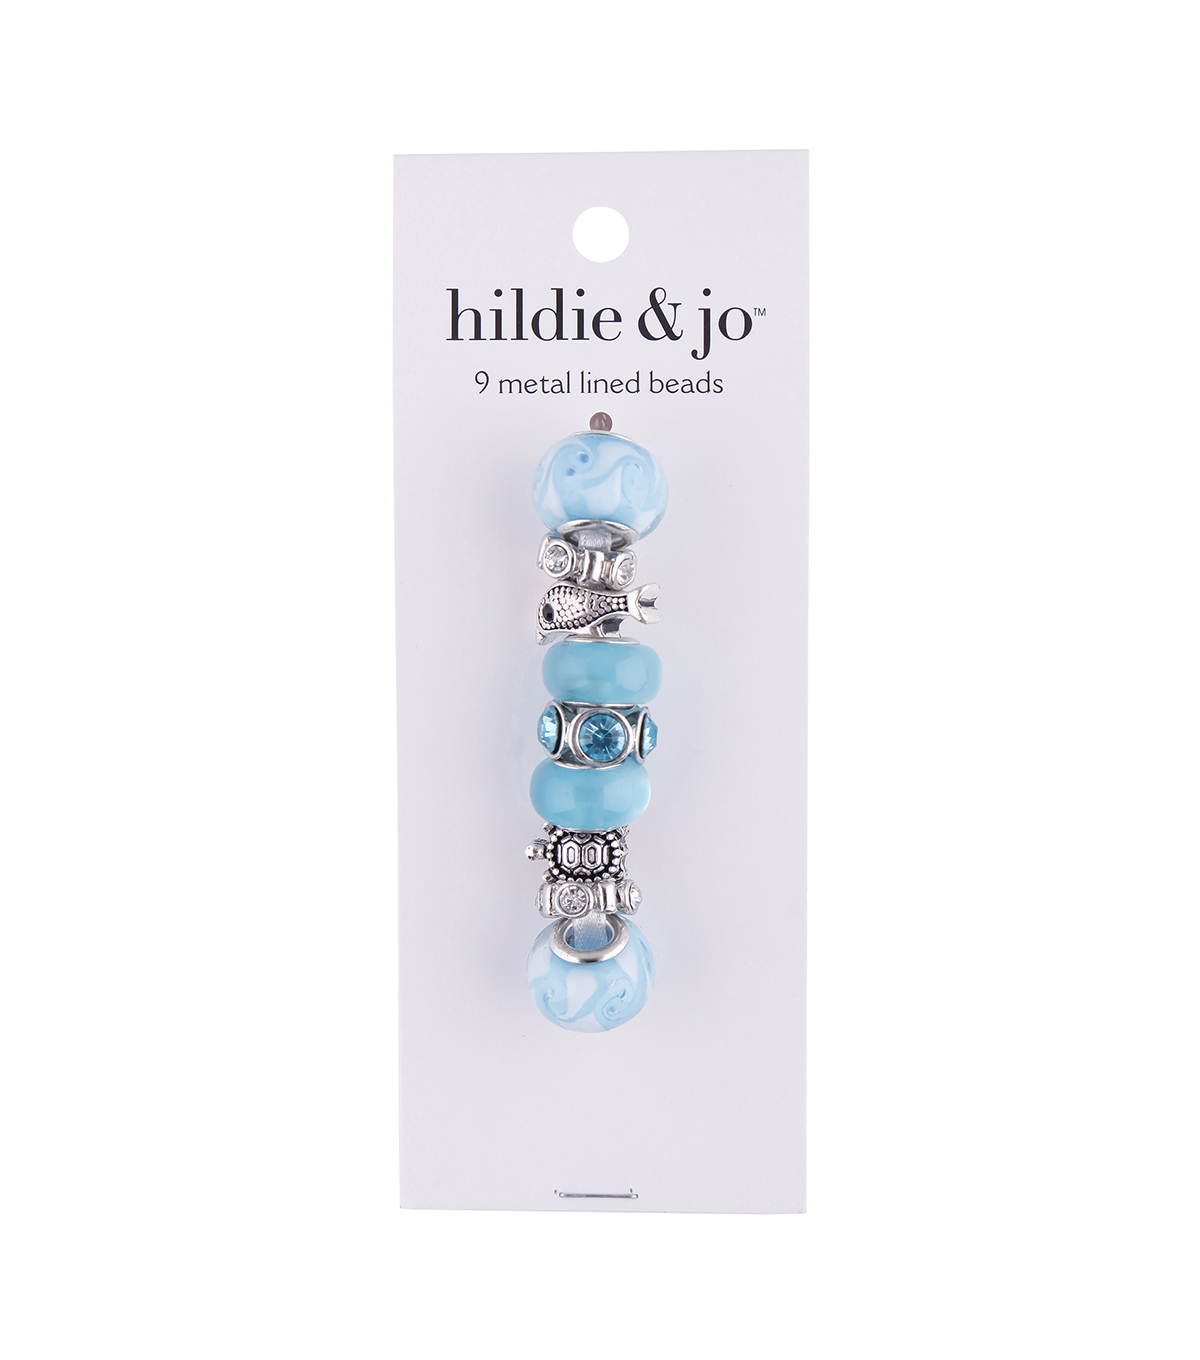 hildie & jo™ Mix & Mingle Metal Lined Glass Beads-Sea Blue